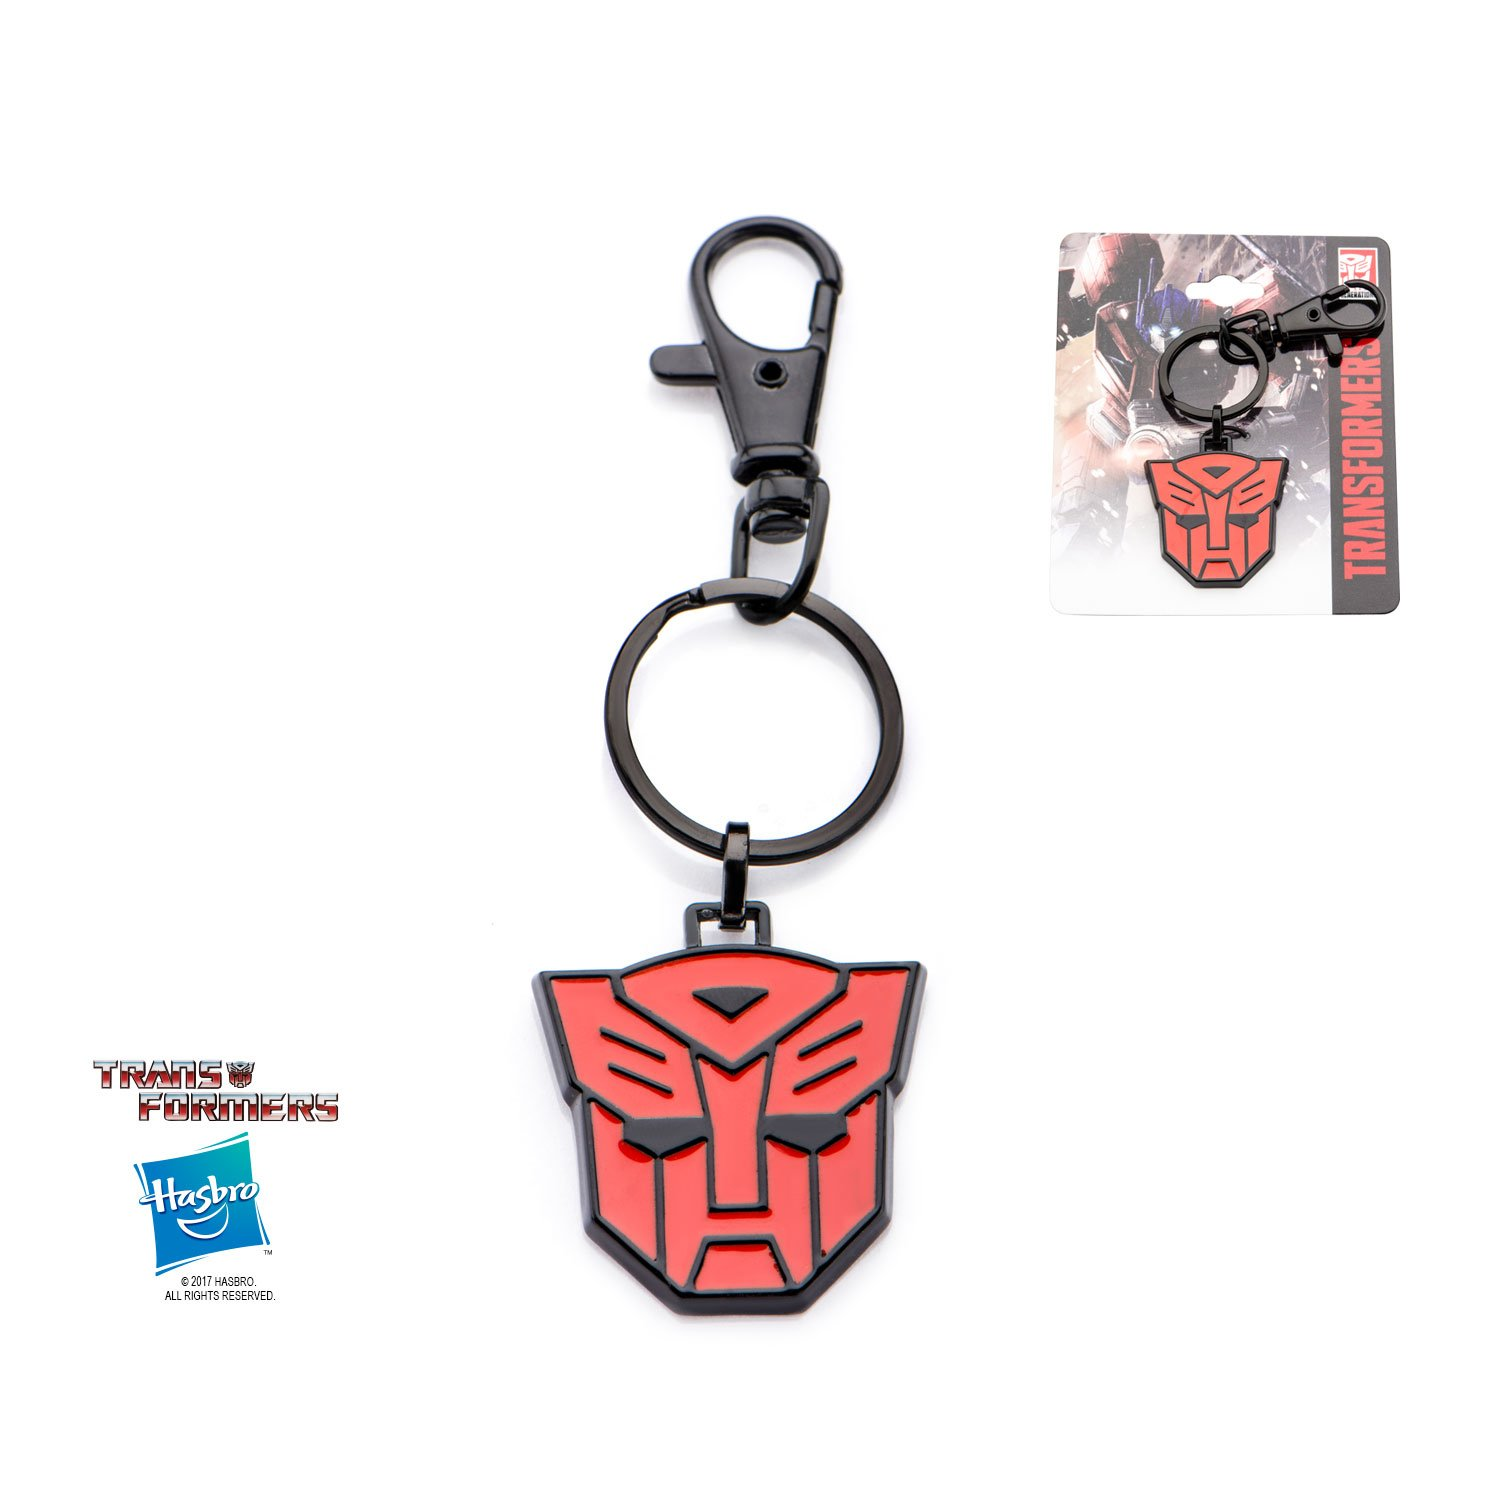 Transformers Autobot Stainless Steel Keychain w/Gift Box by Superheroes Brand by Superheroes Brand (Image #1)